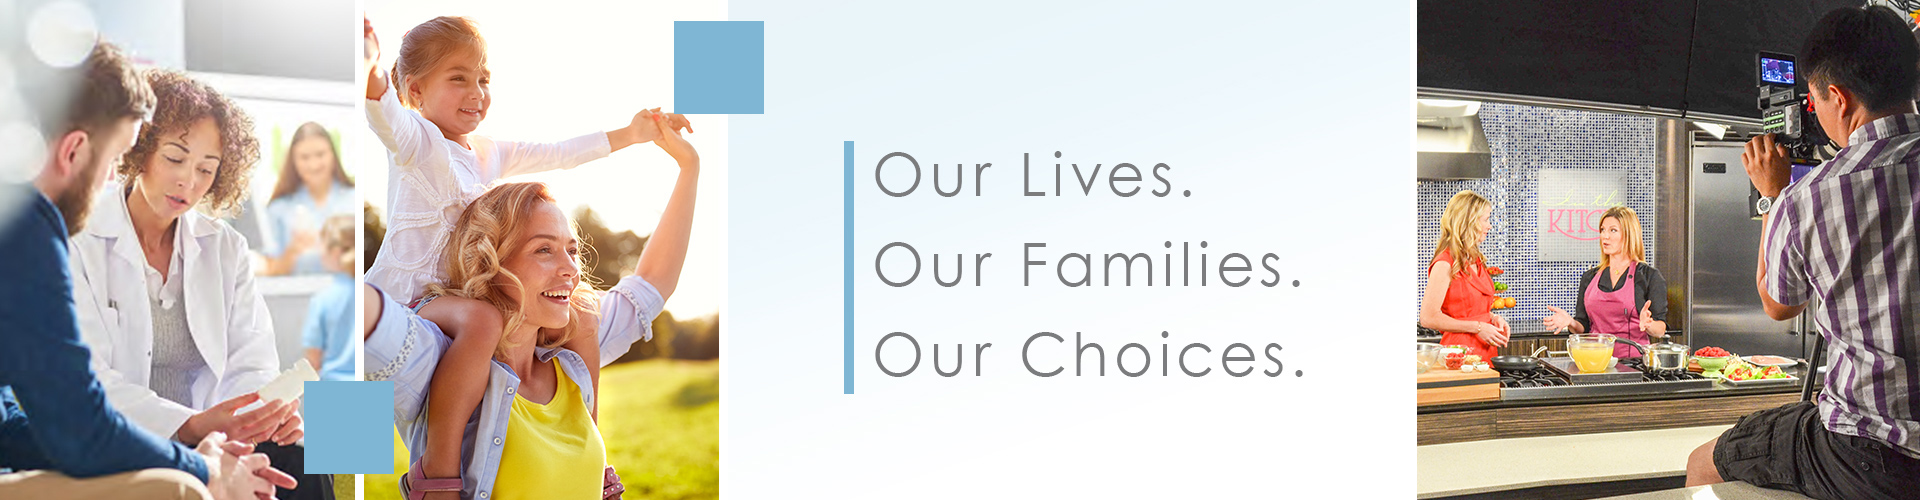 our-lives-families-choices-1920x500